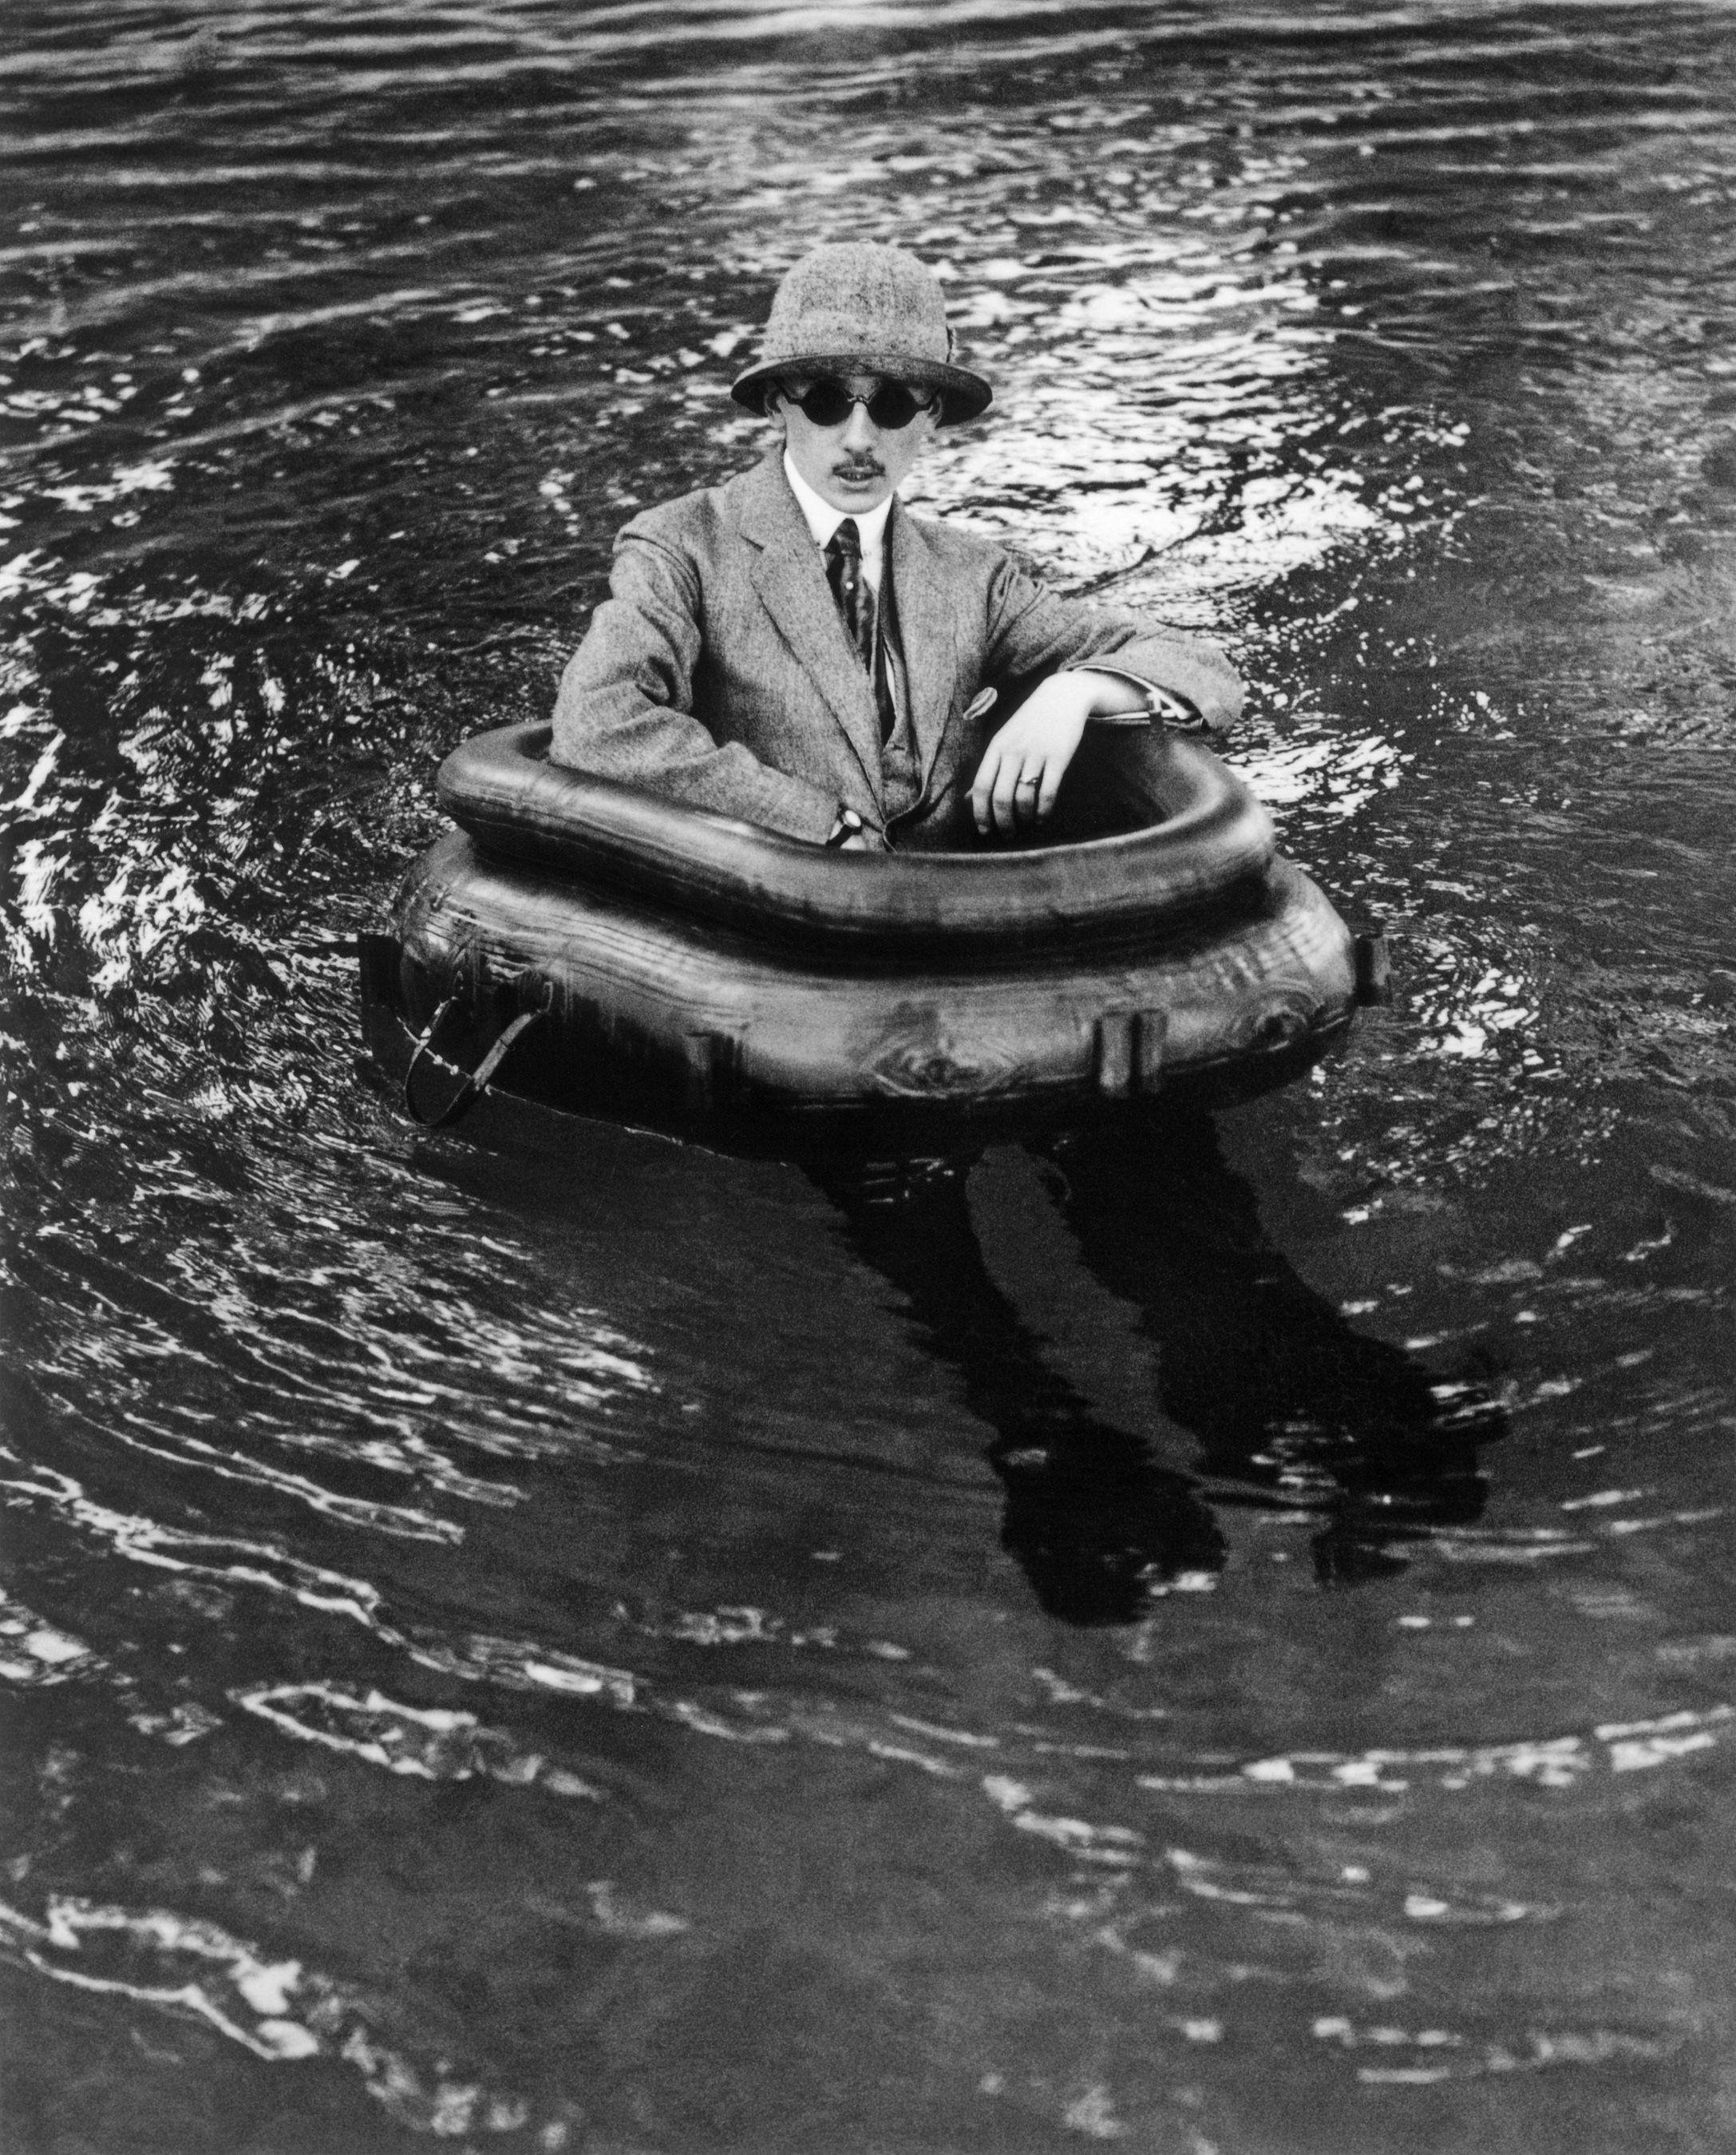 The state-of-the-art gentleman stays high and dry: Lartigue's brother Maurice, nicknamed Zissou, in a high-tech flotation device with rubber boots.